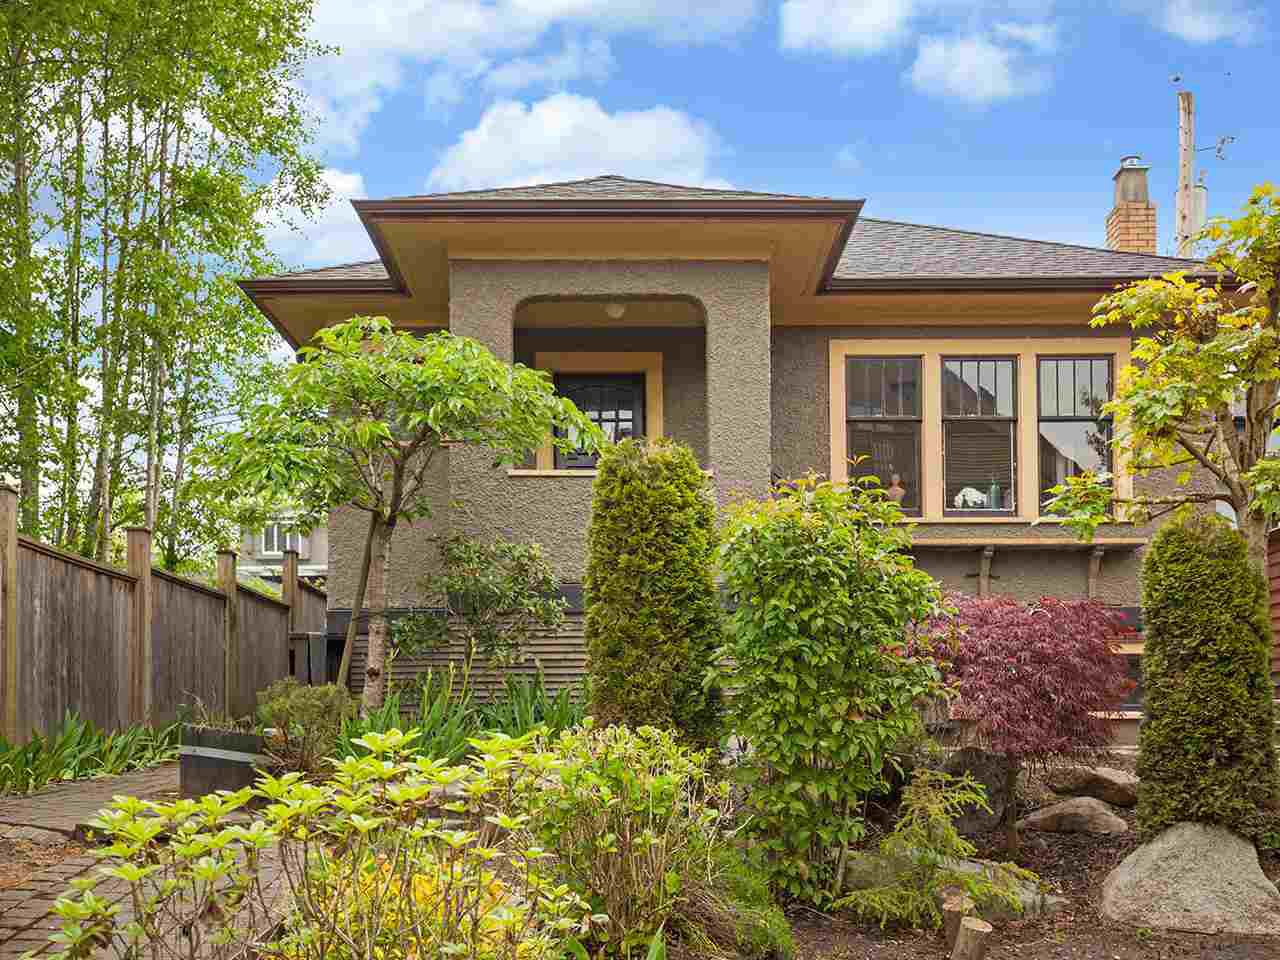 Main Photo: 1785 E KENT AVENUE NORTH AVENUE in Vancouver: Fraserview VE House for sale (Vancouver East)  : MLS®# R2169363